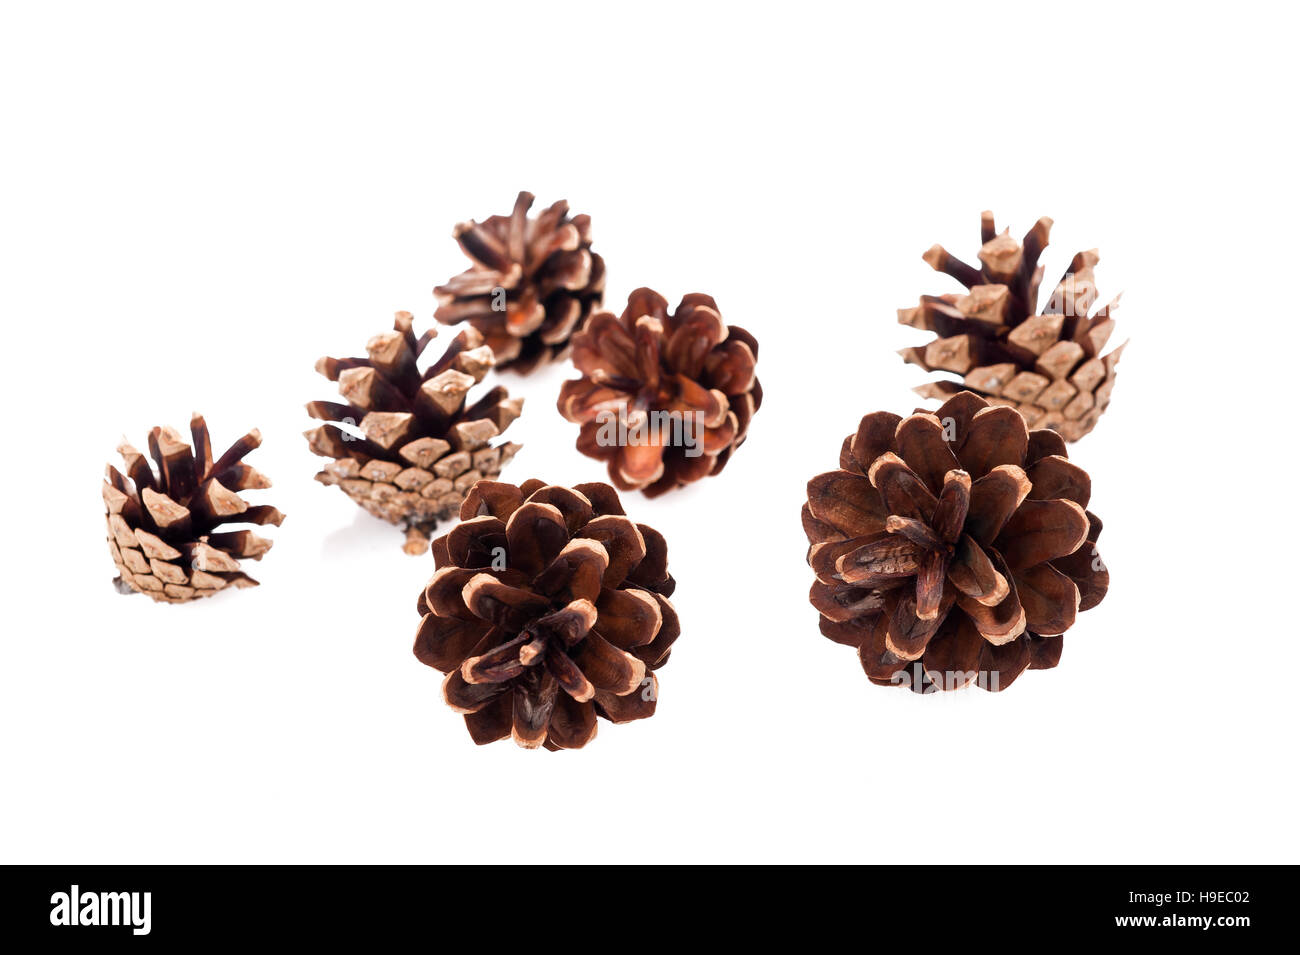 Pine cones group isolated on white - Stock Image